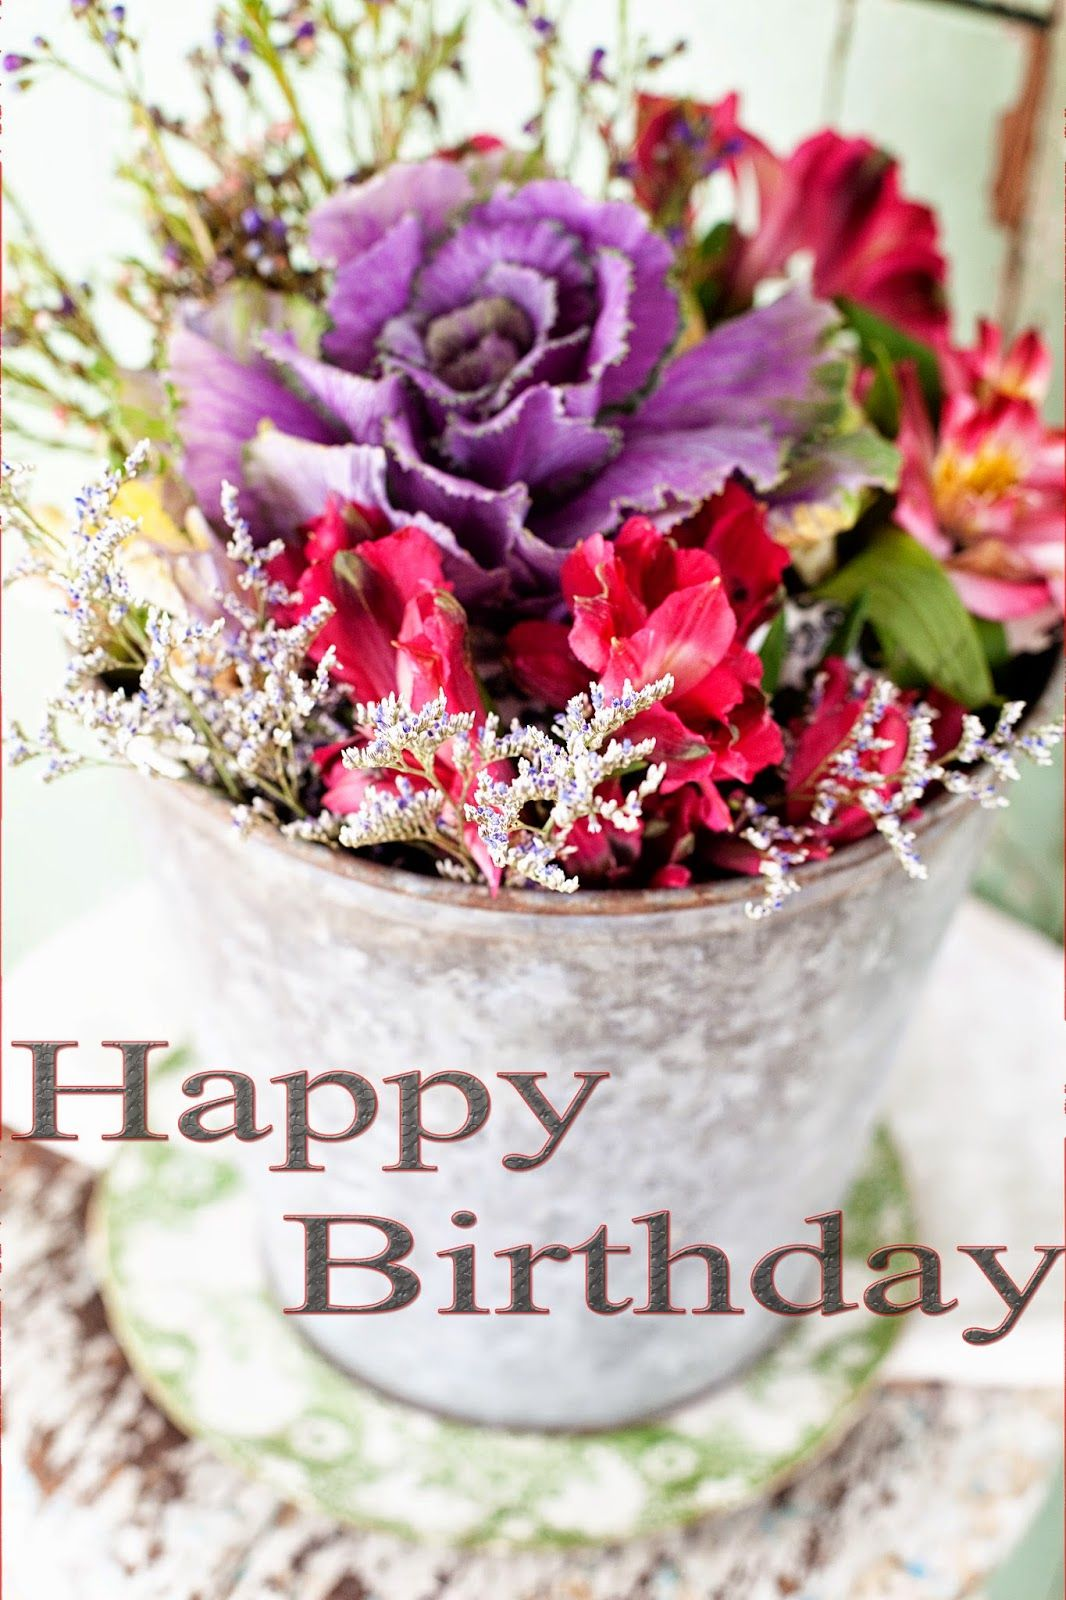 Happy birthday flowers images wishes pinterest flower images happy birthday flowers images izmirmasajfo